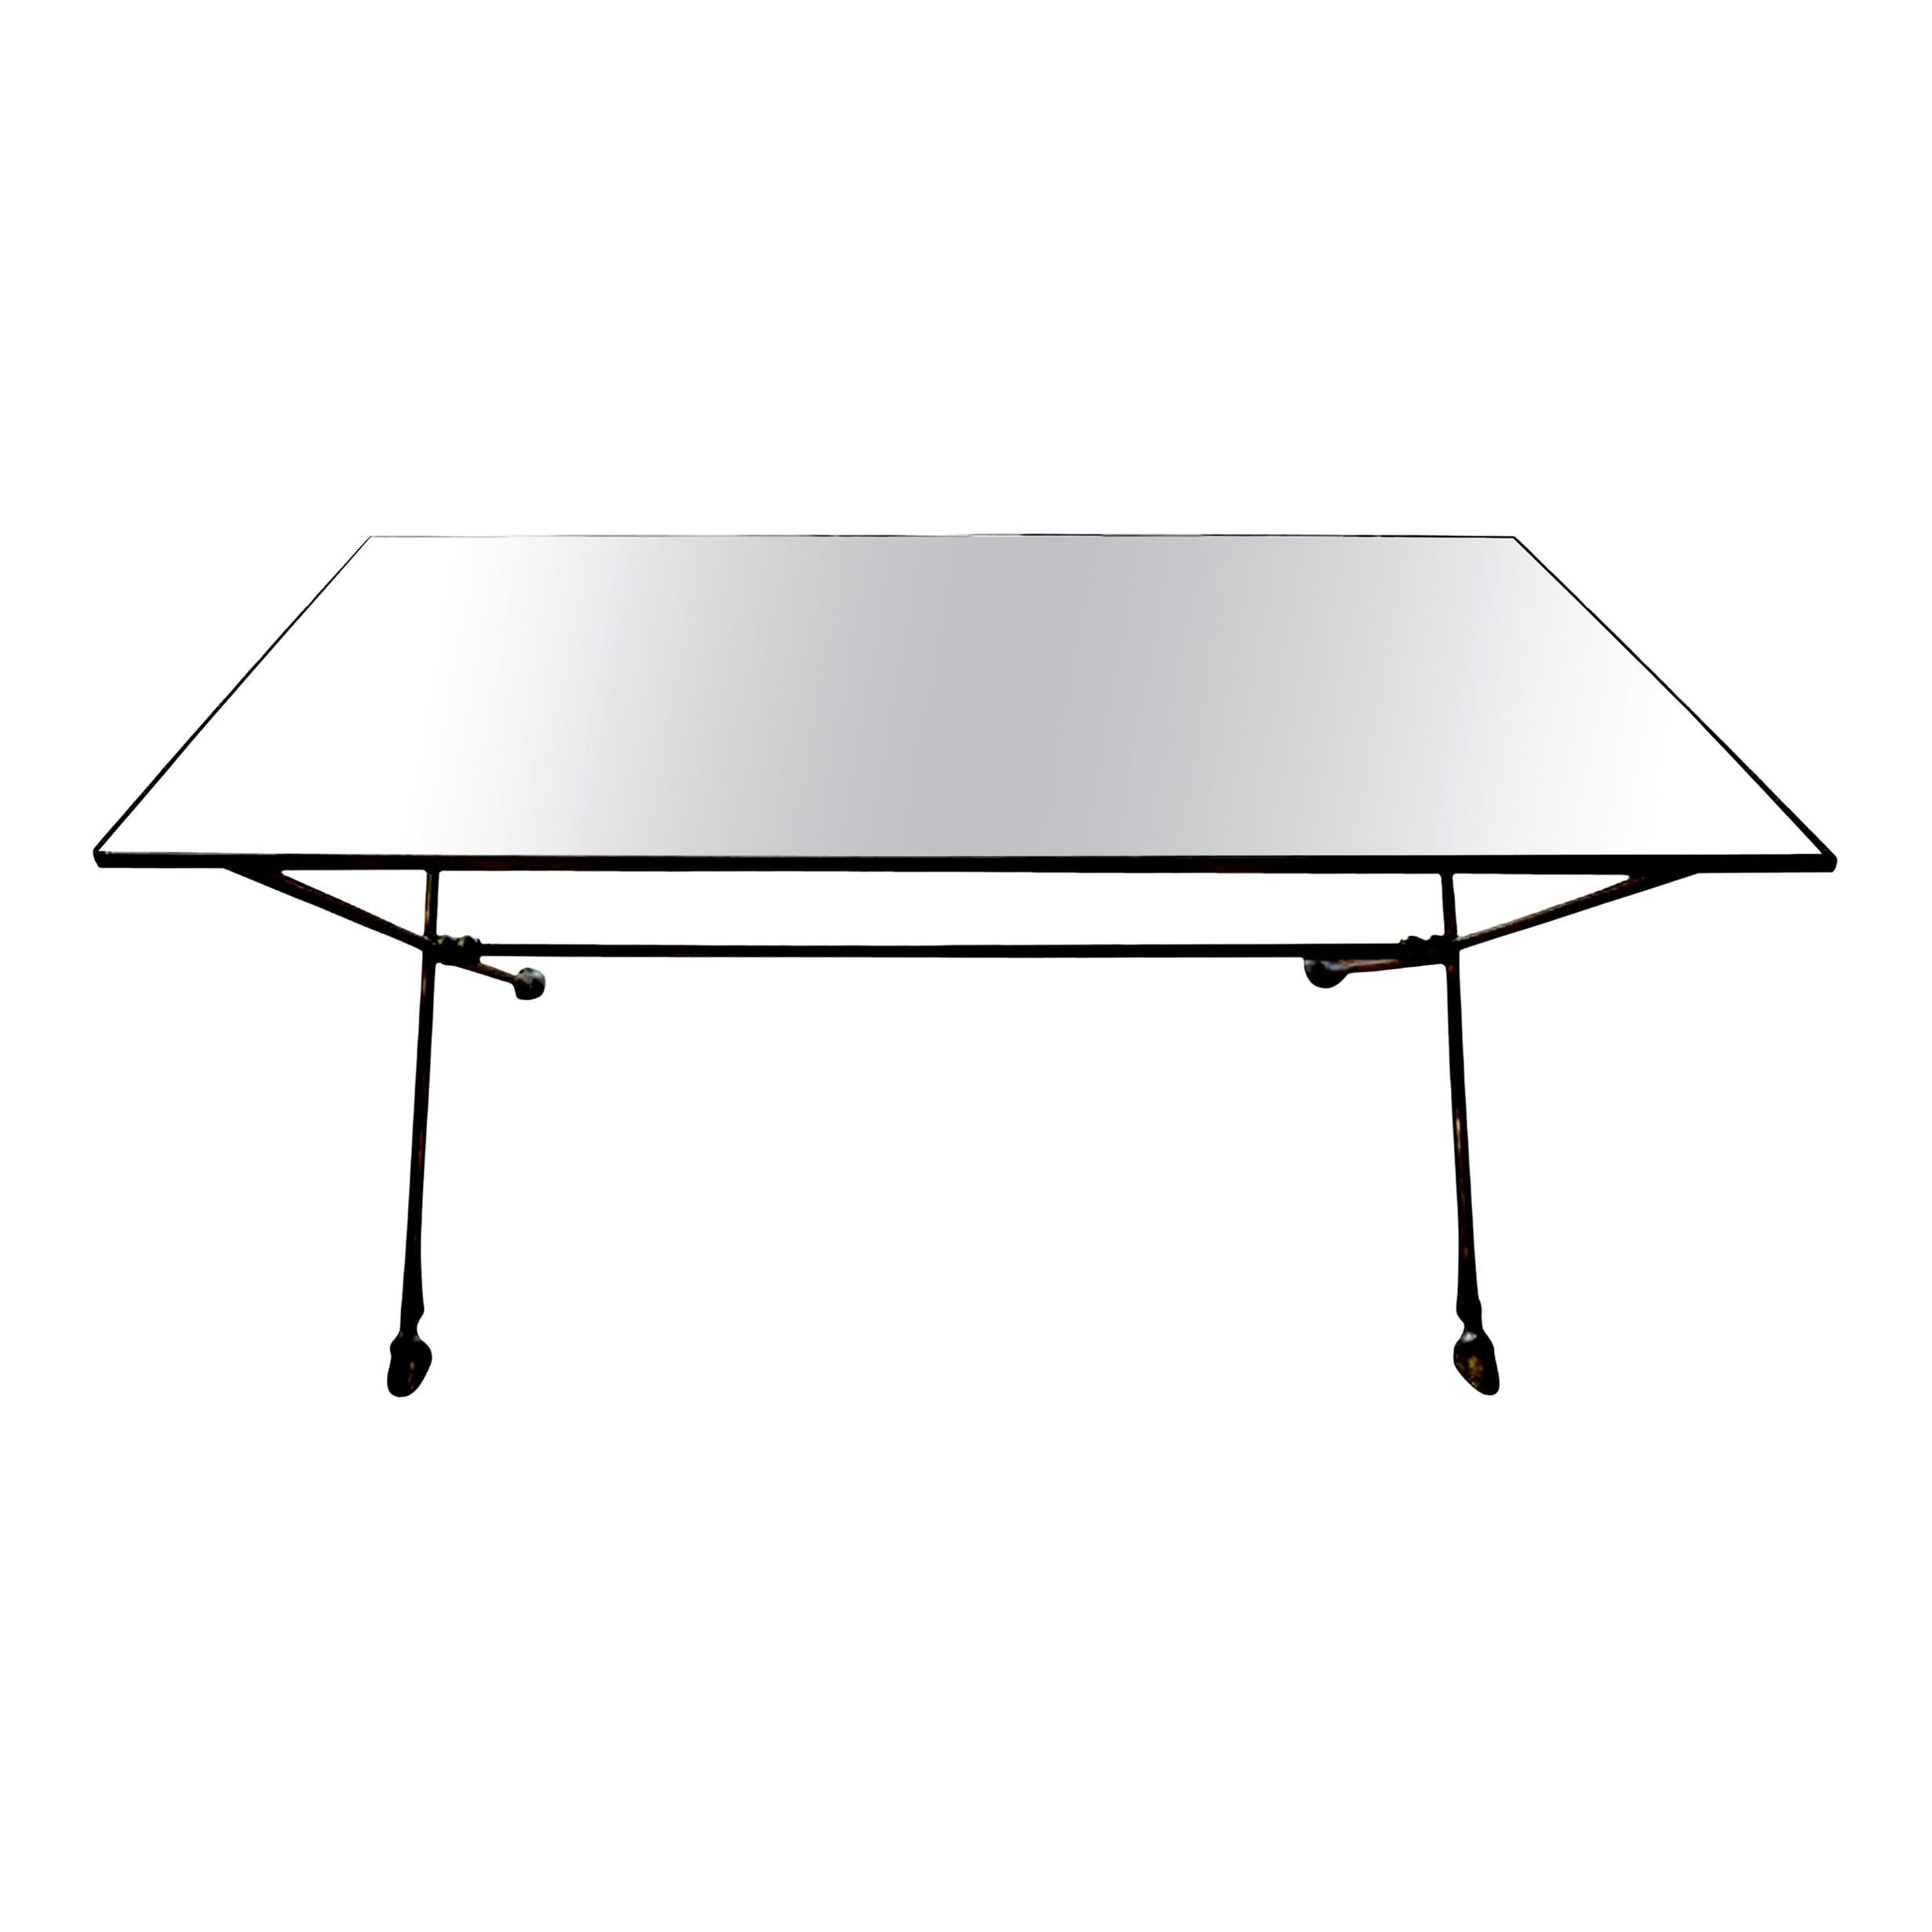 French Maison Baguès Style Bronze Cocktail Table with Mirrored Top